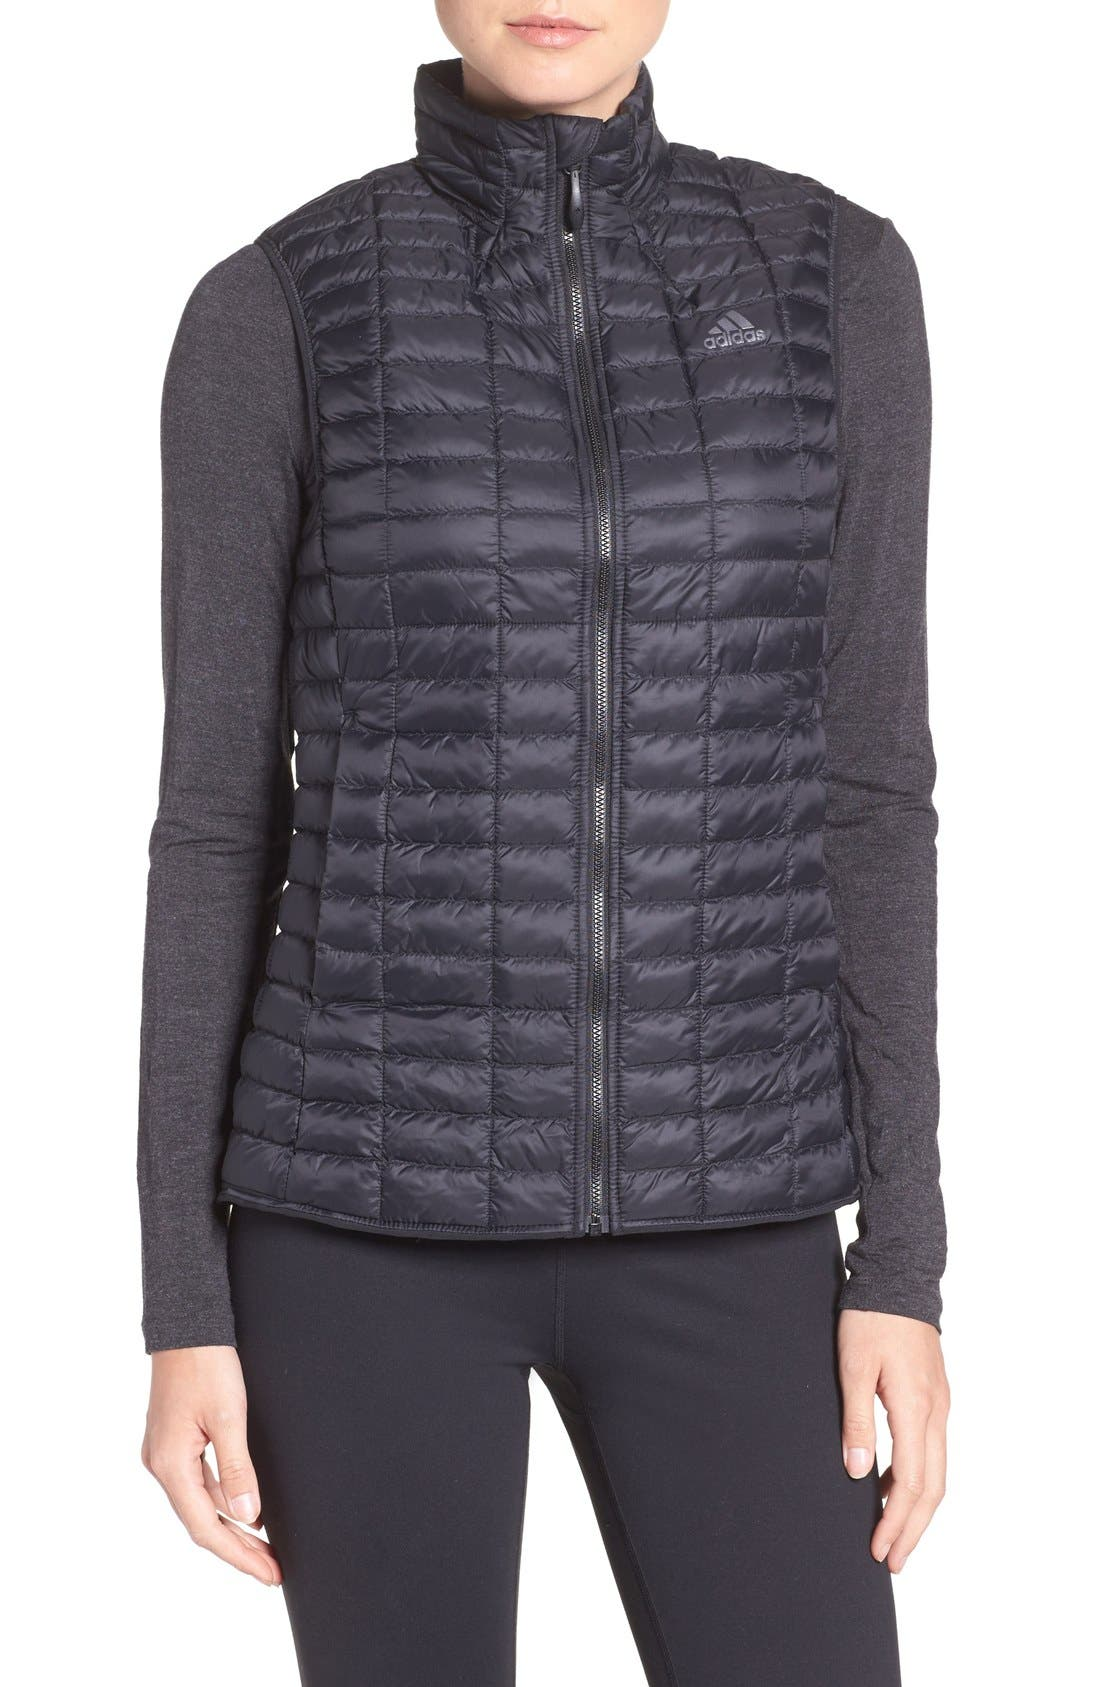 'Flyloft' Insulated Vest,                             Main thumbnail 1, color,                             Black/ Utility Black